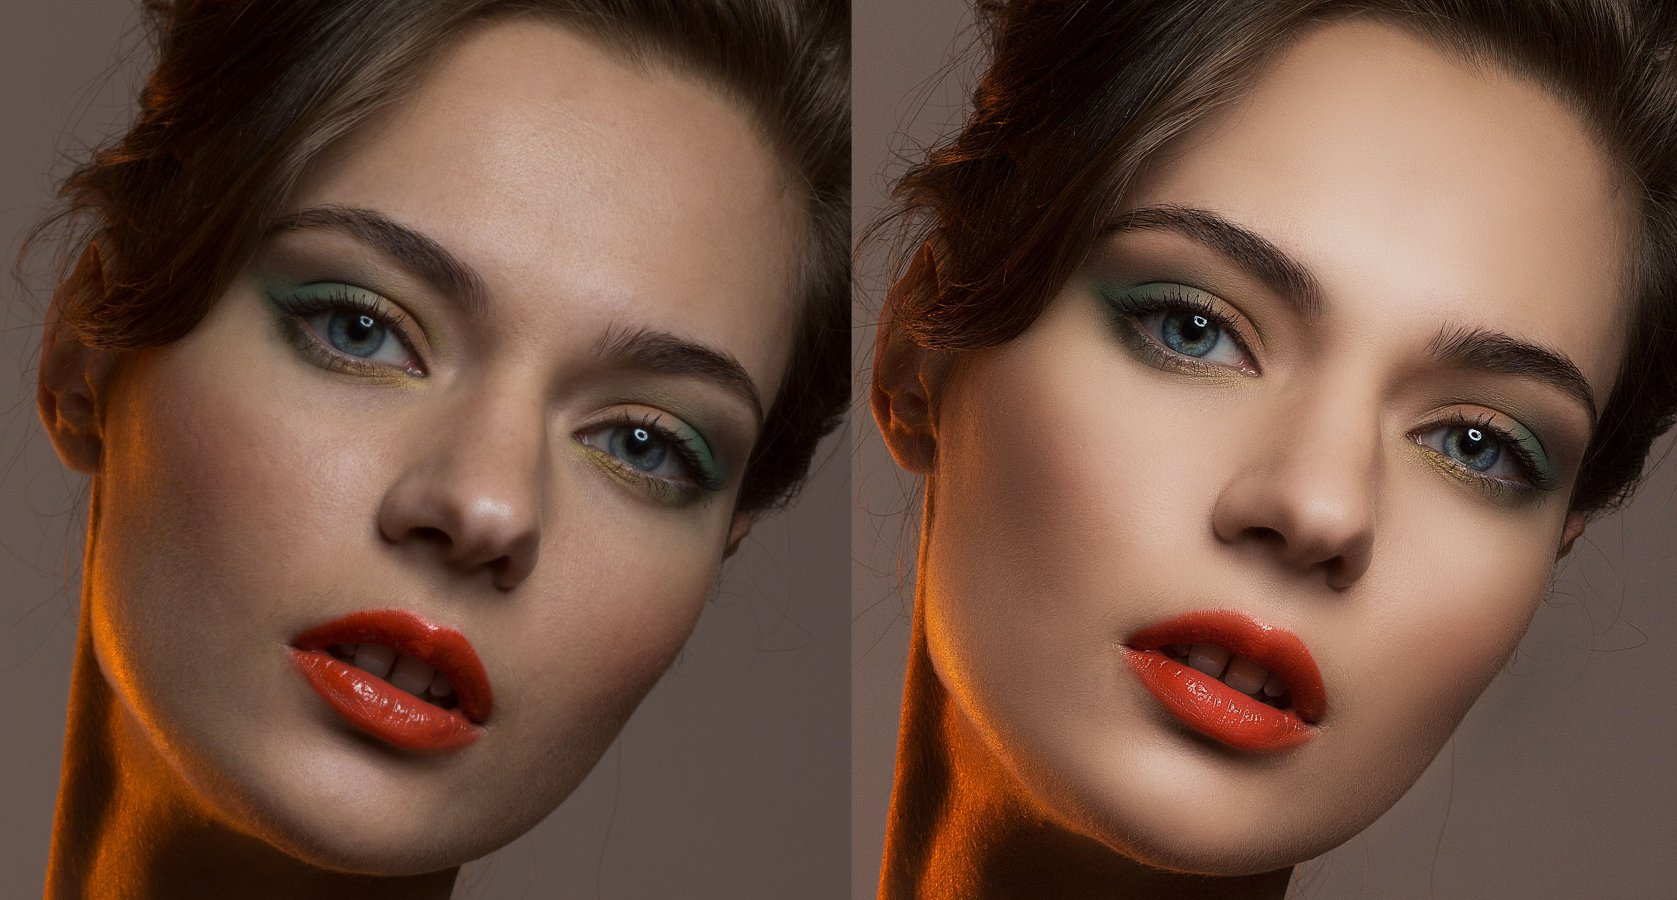 Photoshop Cubism - Create A Cubist Look In Photoshop - Art Professional photographic retouching tutorial